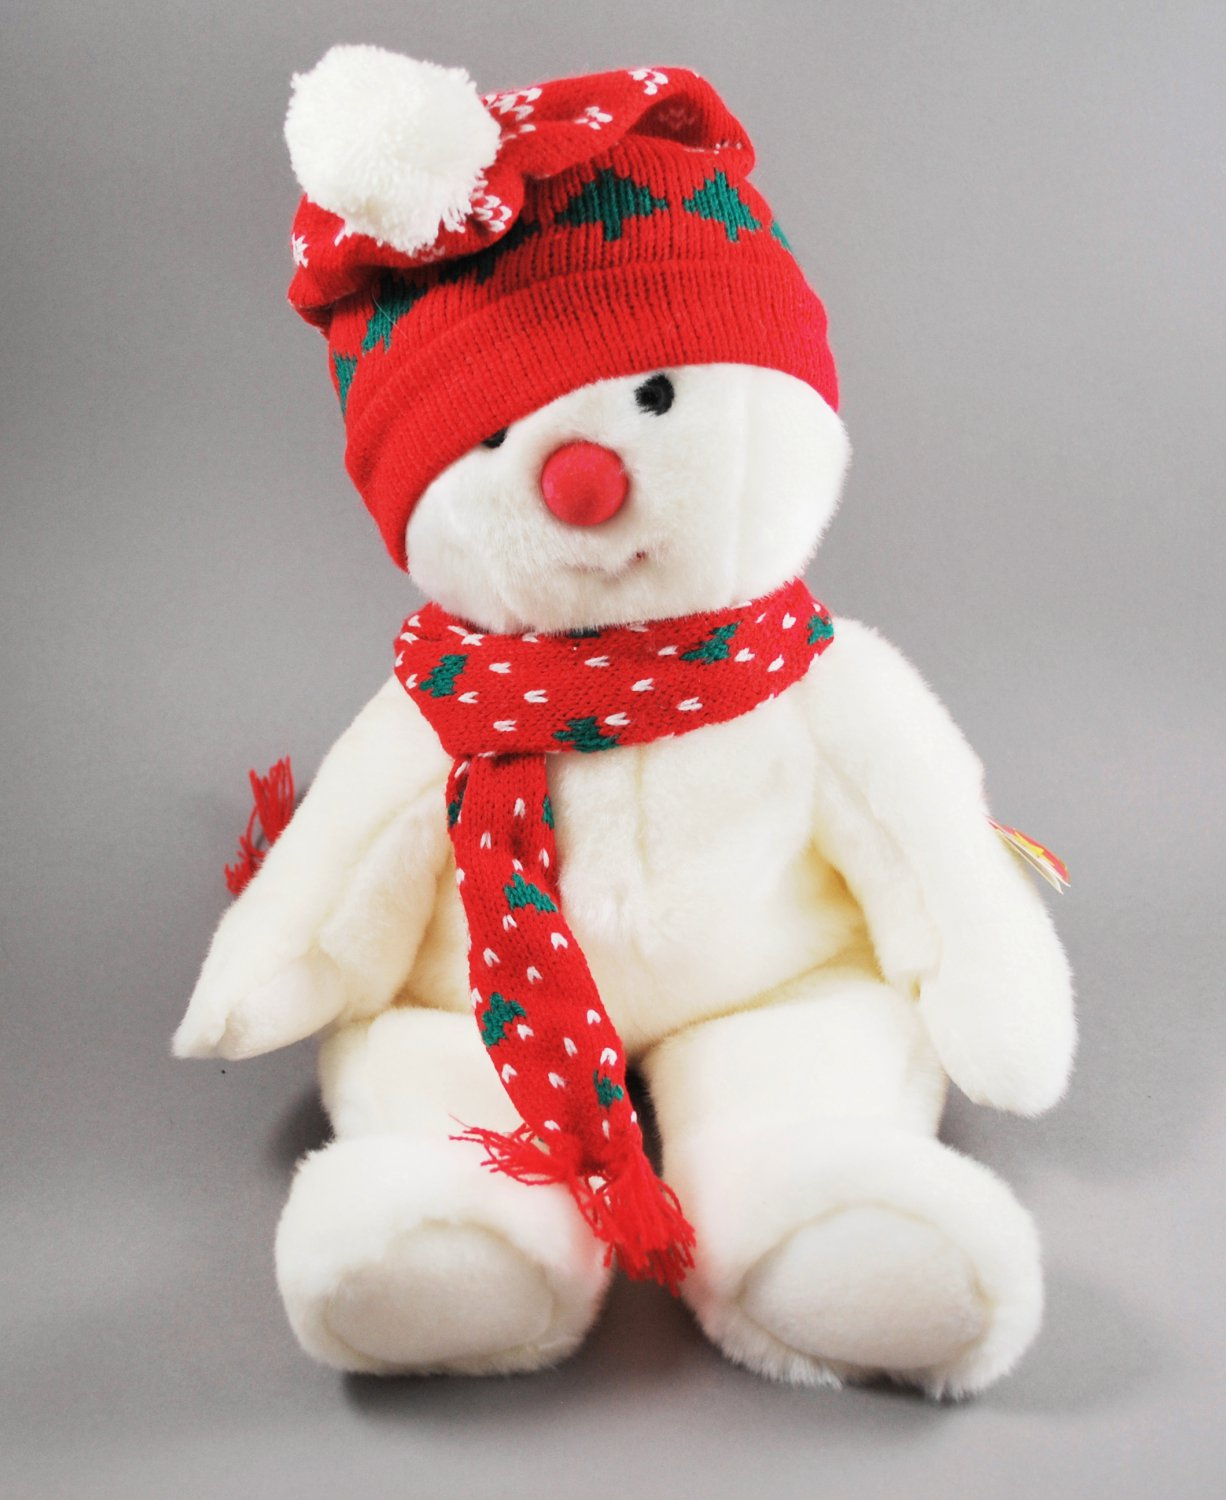 Winter Holiday Snowboy the Snowman Ty Beanie Buddy Plush Style 9342